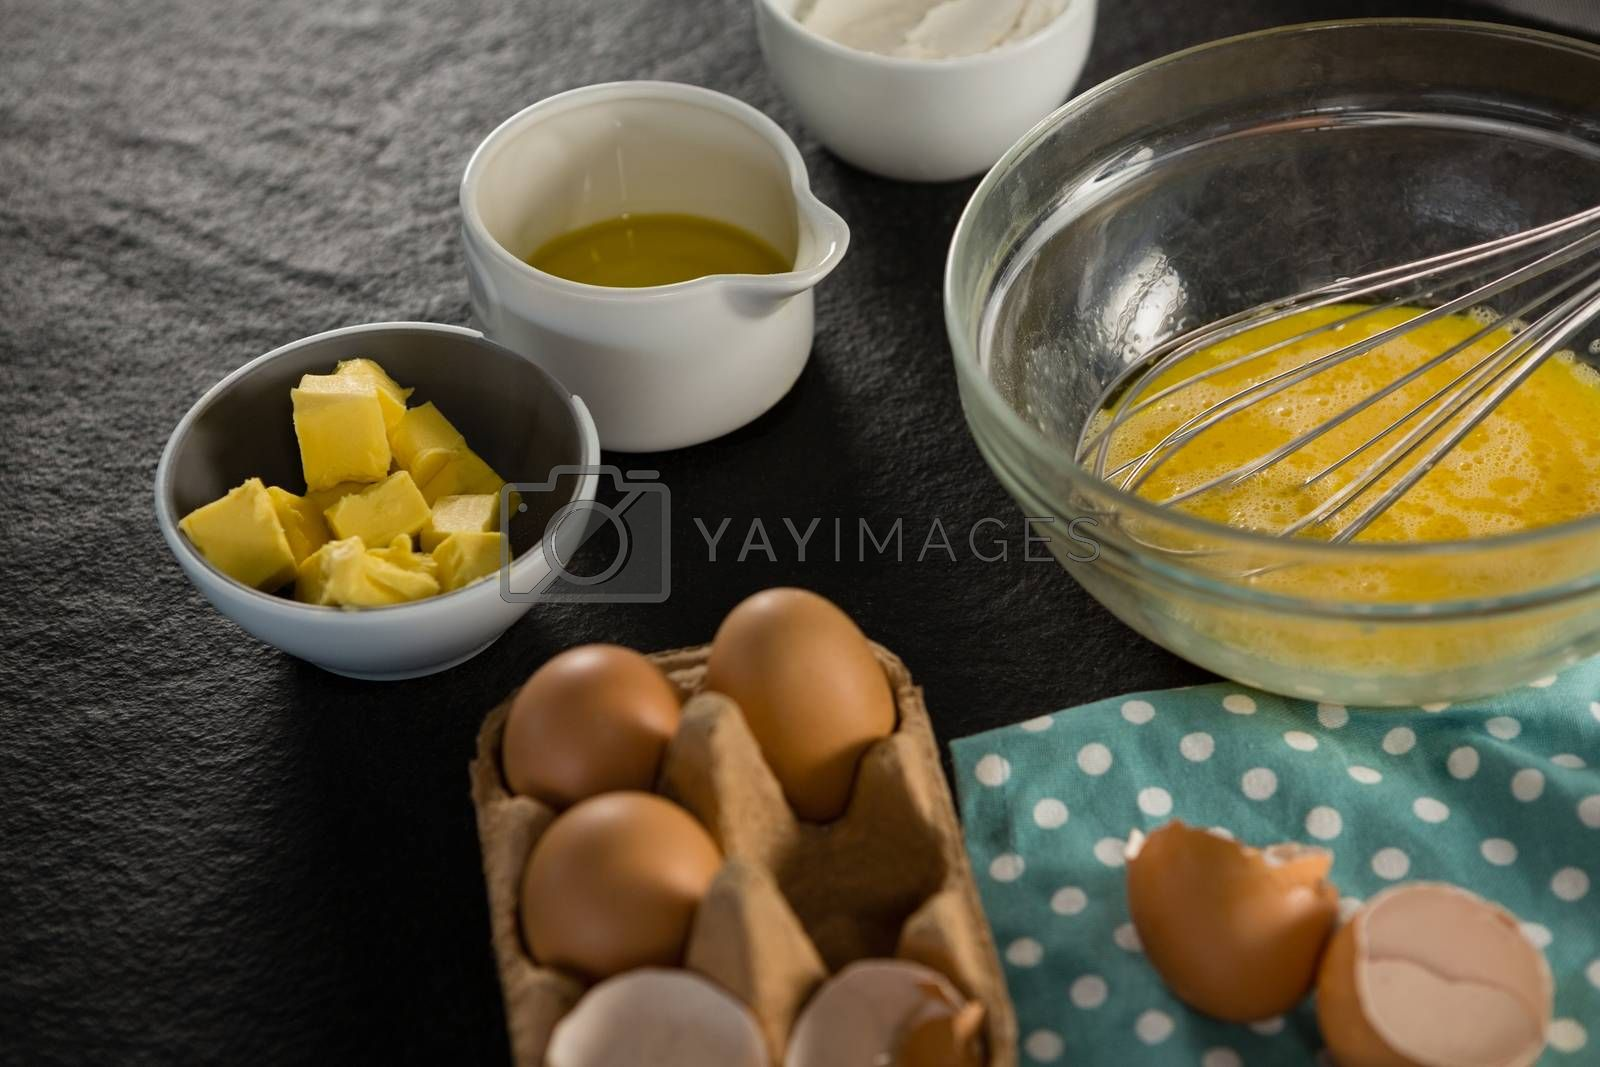 Beaten eggs, egg tray, butter, oil and flour kept on a black surface by Wavebreakmedia